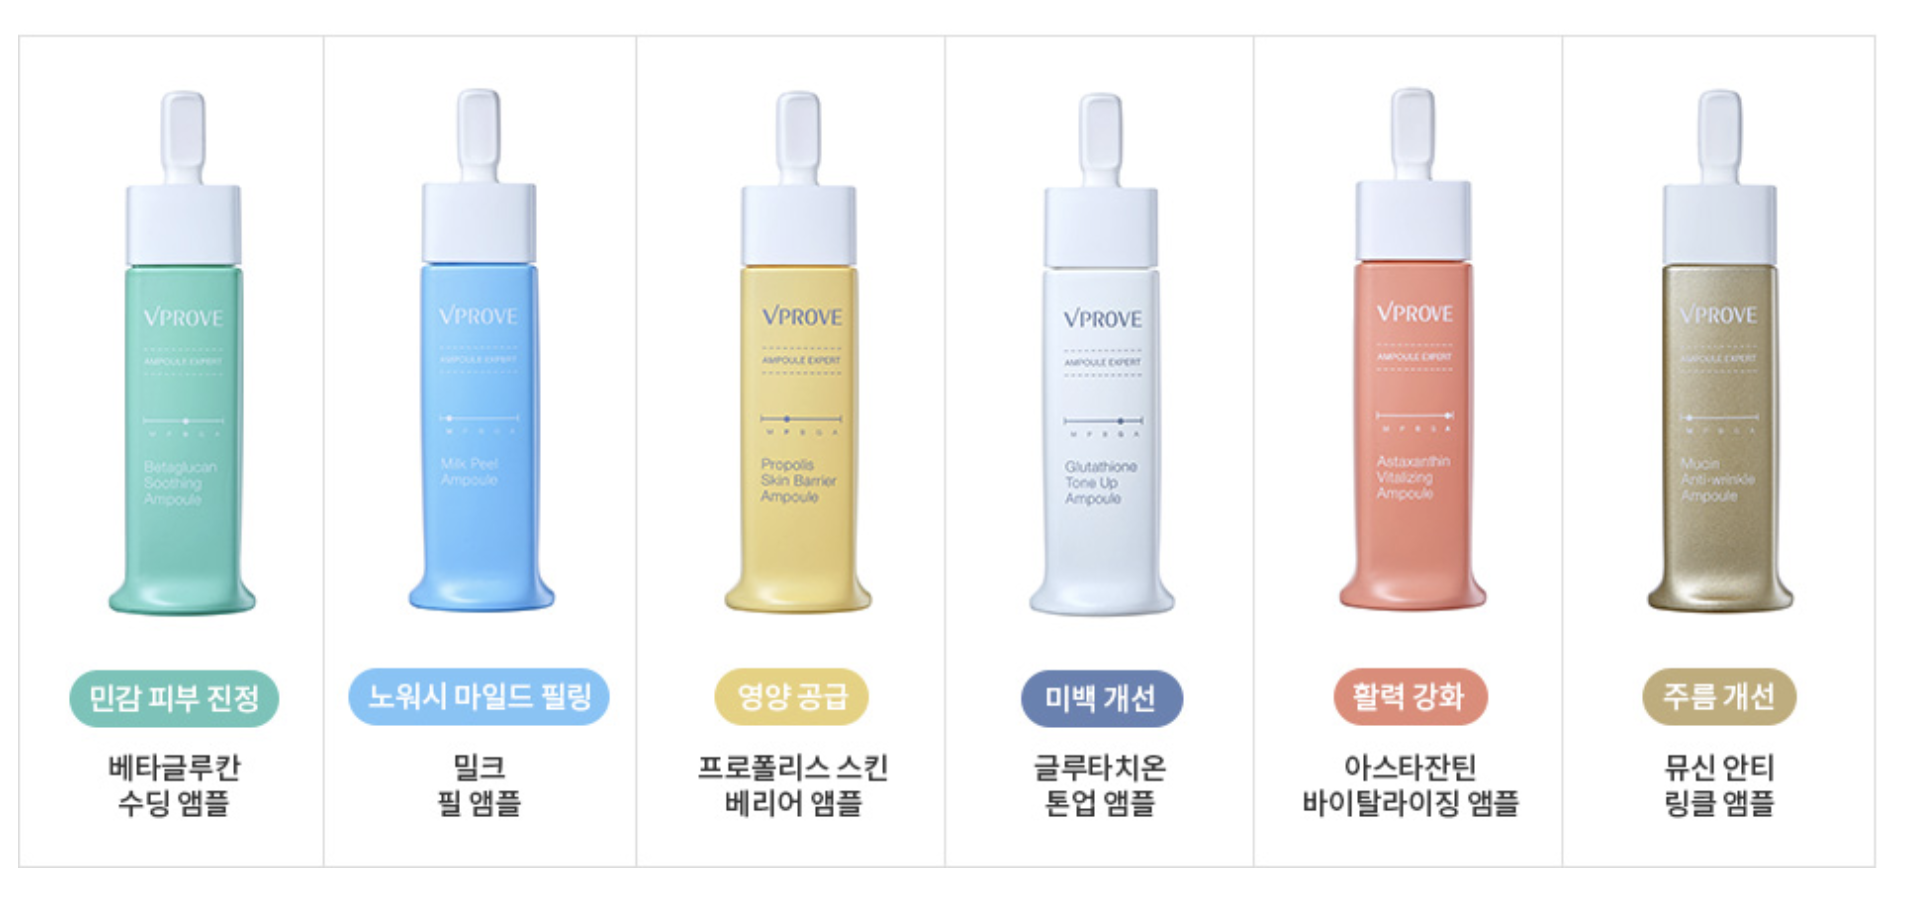 What Cosmetics To Buy In Korea These 30 Products Are Only Sold There Cream 2 1 Premium Utilising A Similar Concept The Expert Line Ampoule Consists Of Six Different Ampoules Addressing Various Skin Concerns As Well